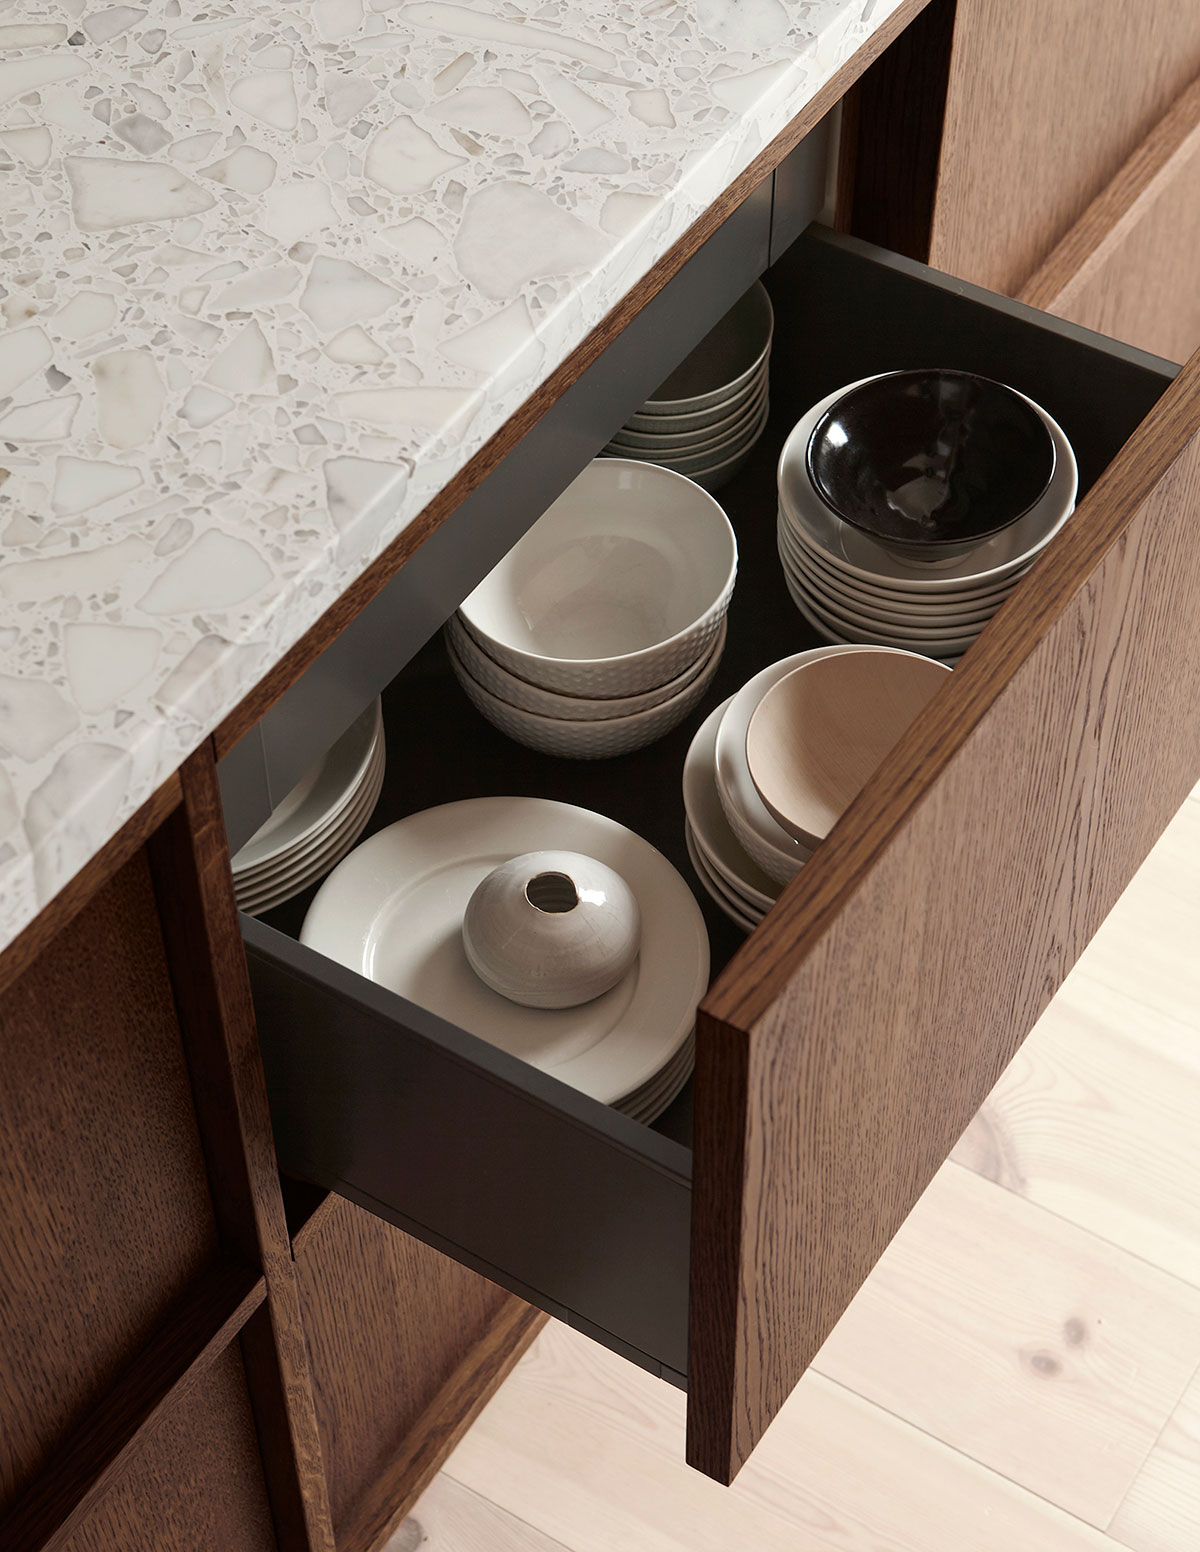 Wooden oak drawers in this in frame kitchen with terrazzo countertop